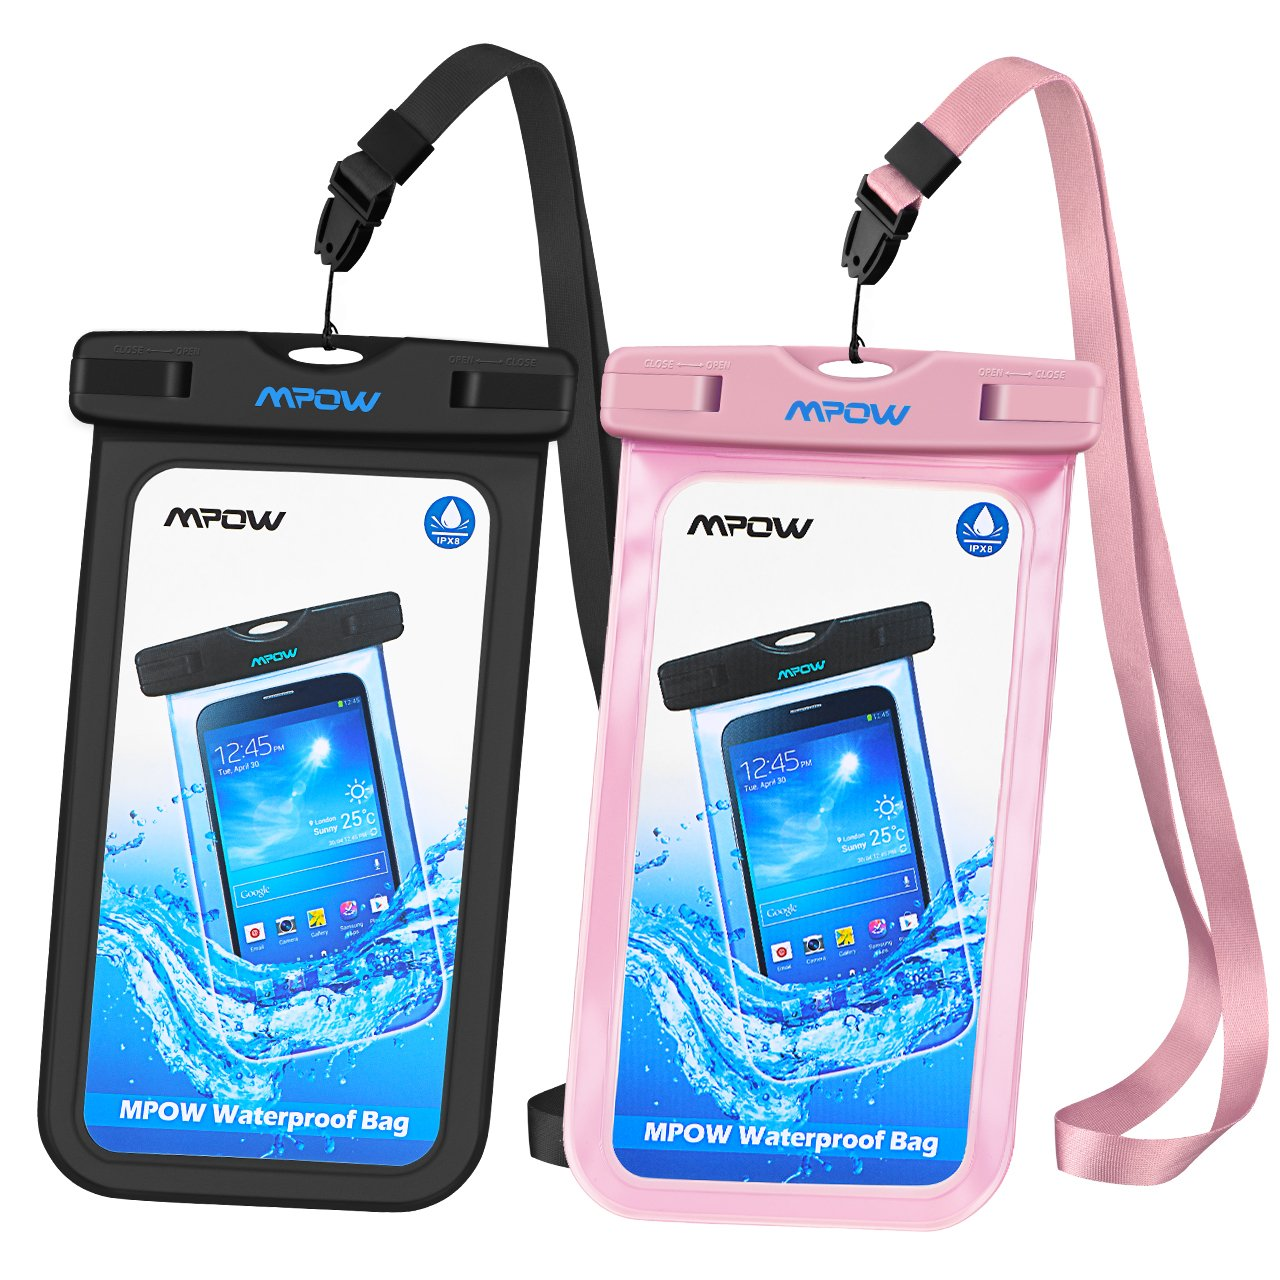 Mpow Universal Waterproof Case, IPX8 Waterproof Phone Pouch Dry Bag Compatible for iPhone Xs Max/Xs/Xr/X/8/8plus/7/7plus/6s/6/6s Plus Galaxy s9/s8/s7 Google Pixel HTC12 (Black+Pink 2-Pack) by Mpow (Image #1)